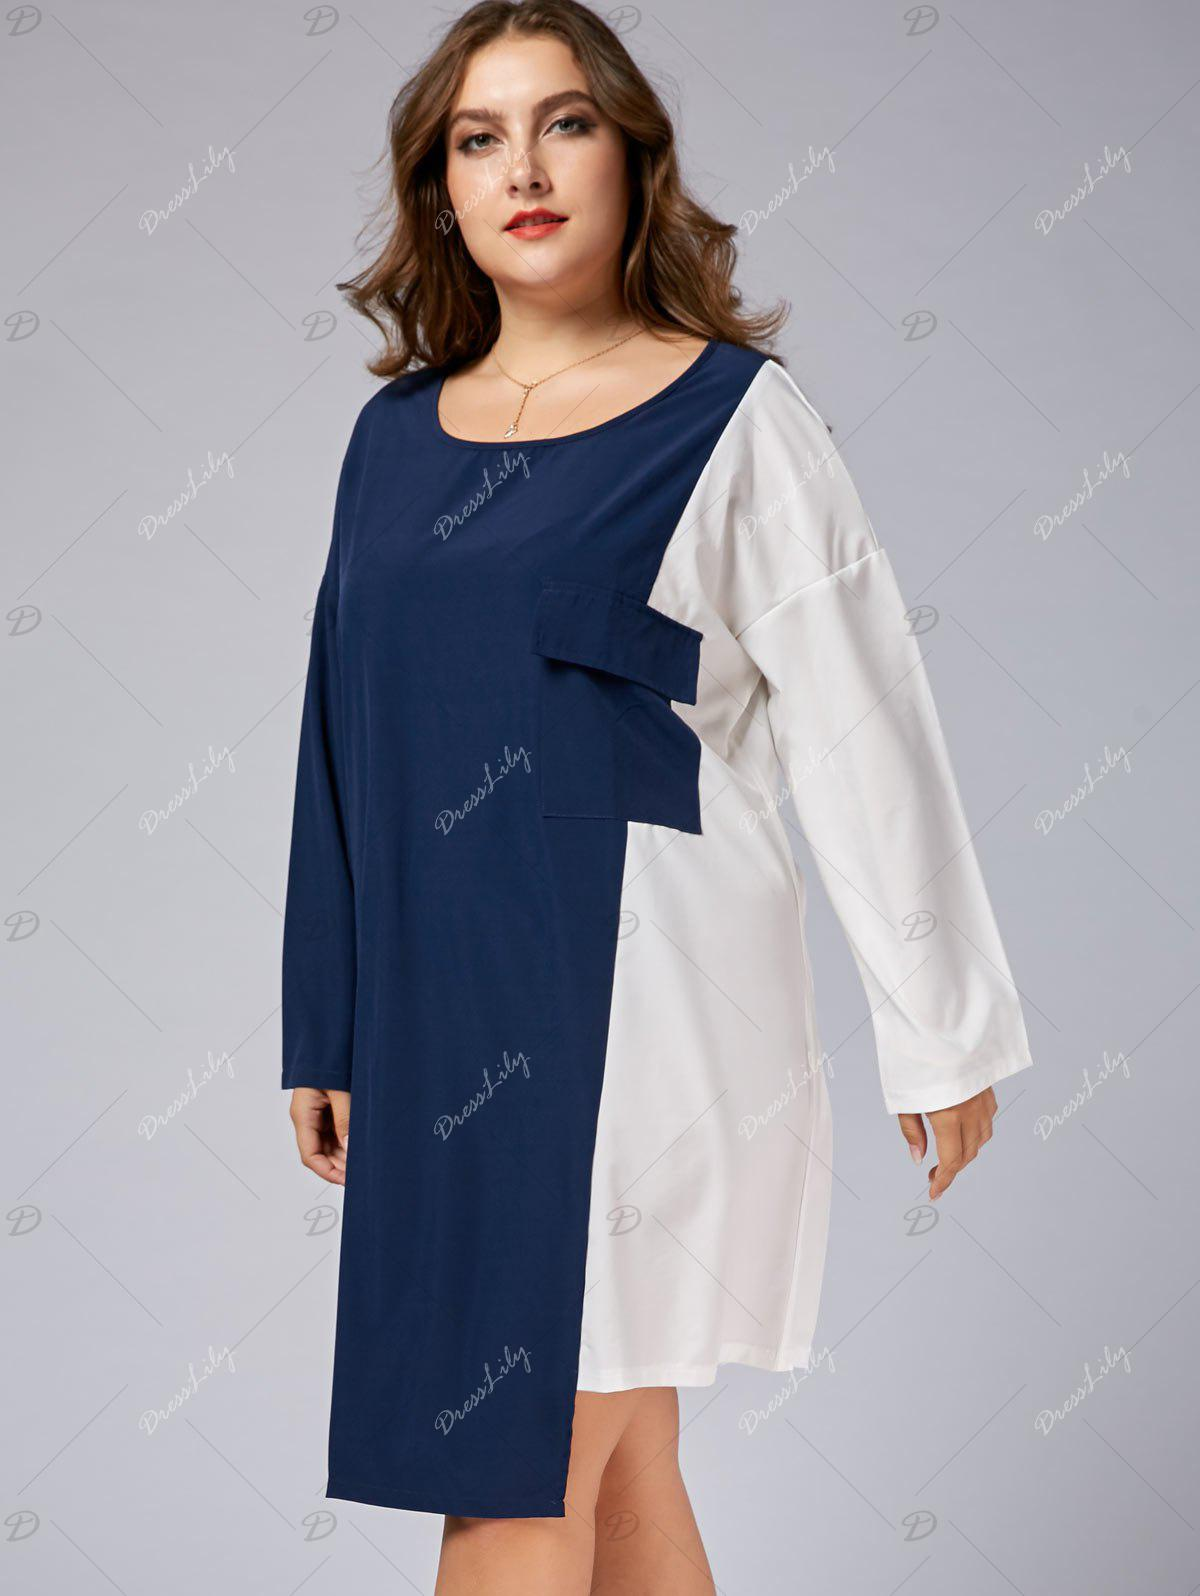 Plus Size Color Block Business Dress with Sleeves - BLUE/WHITE 7XL